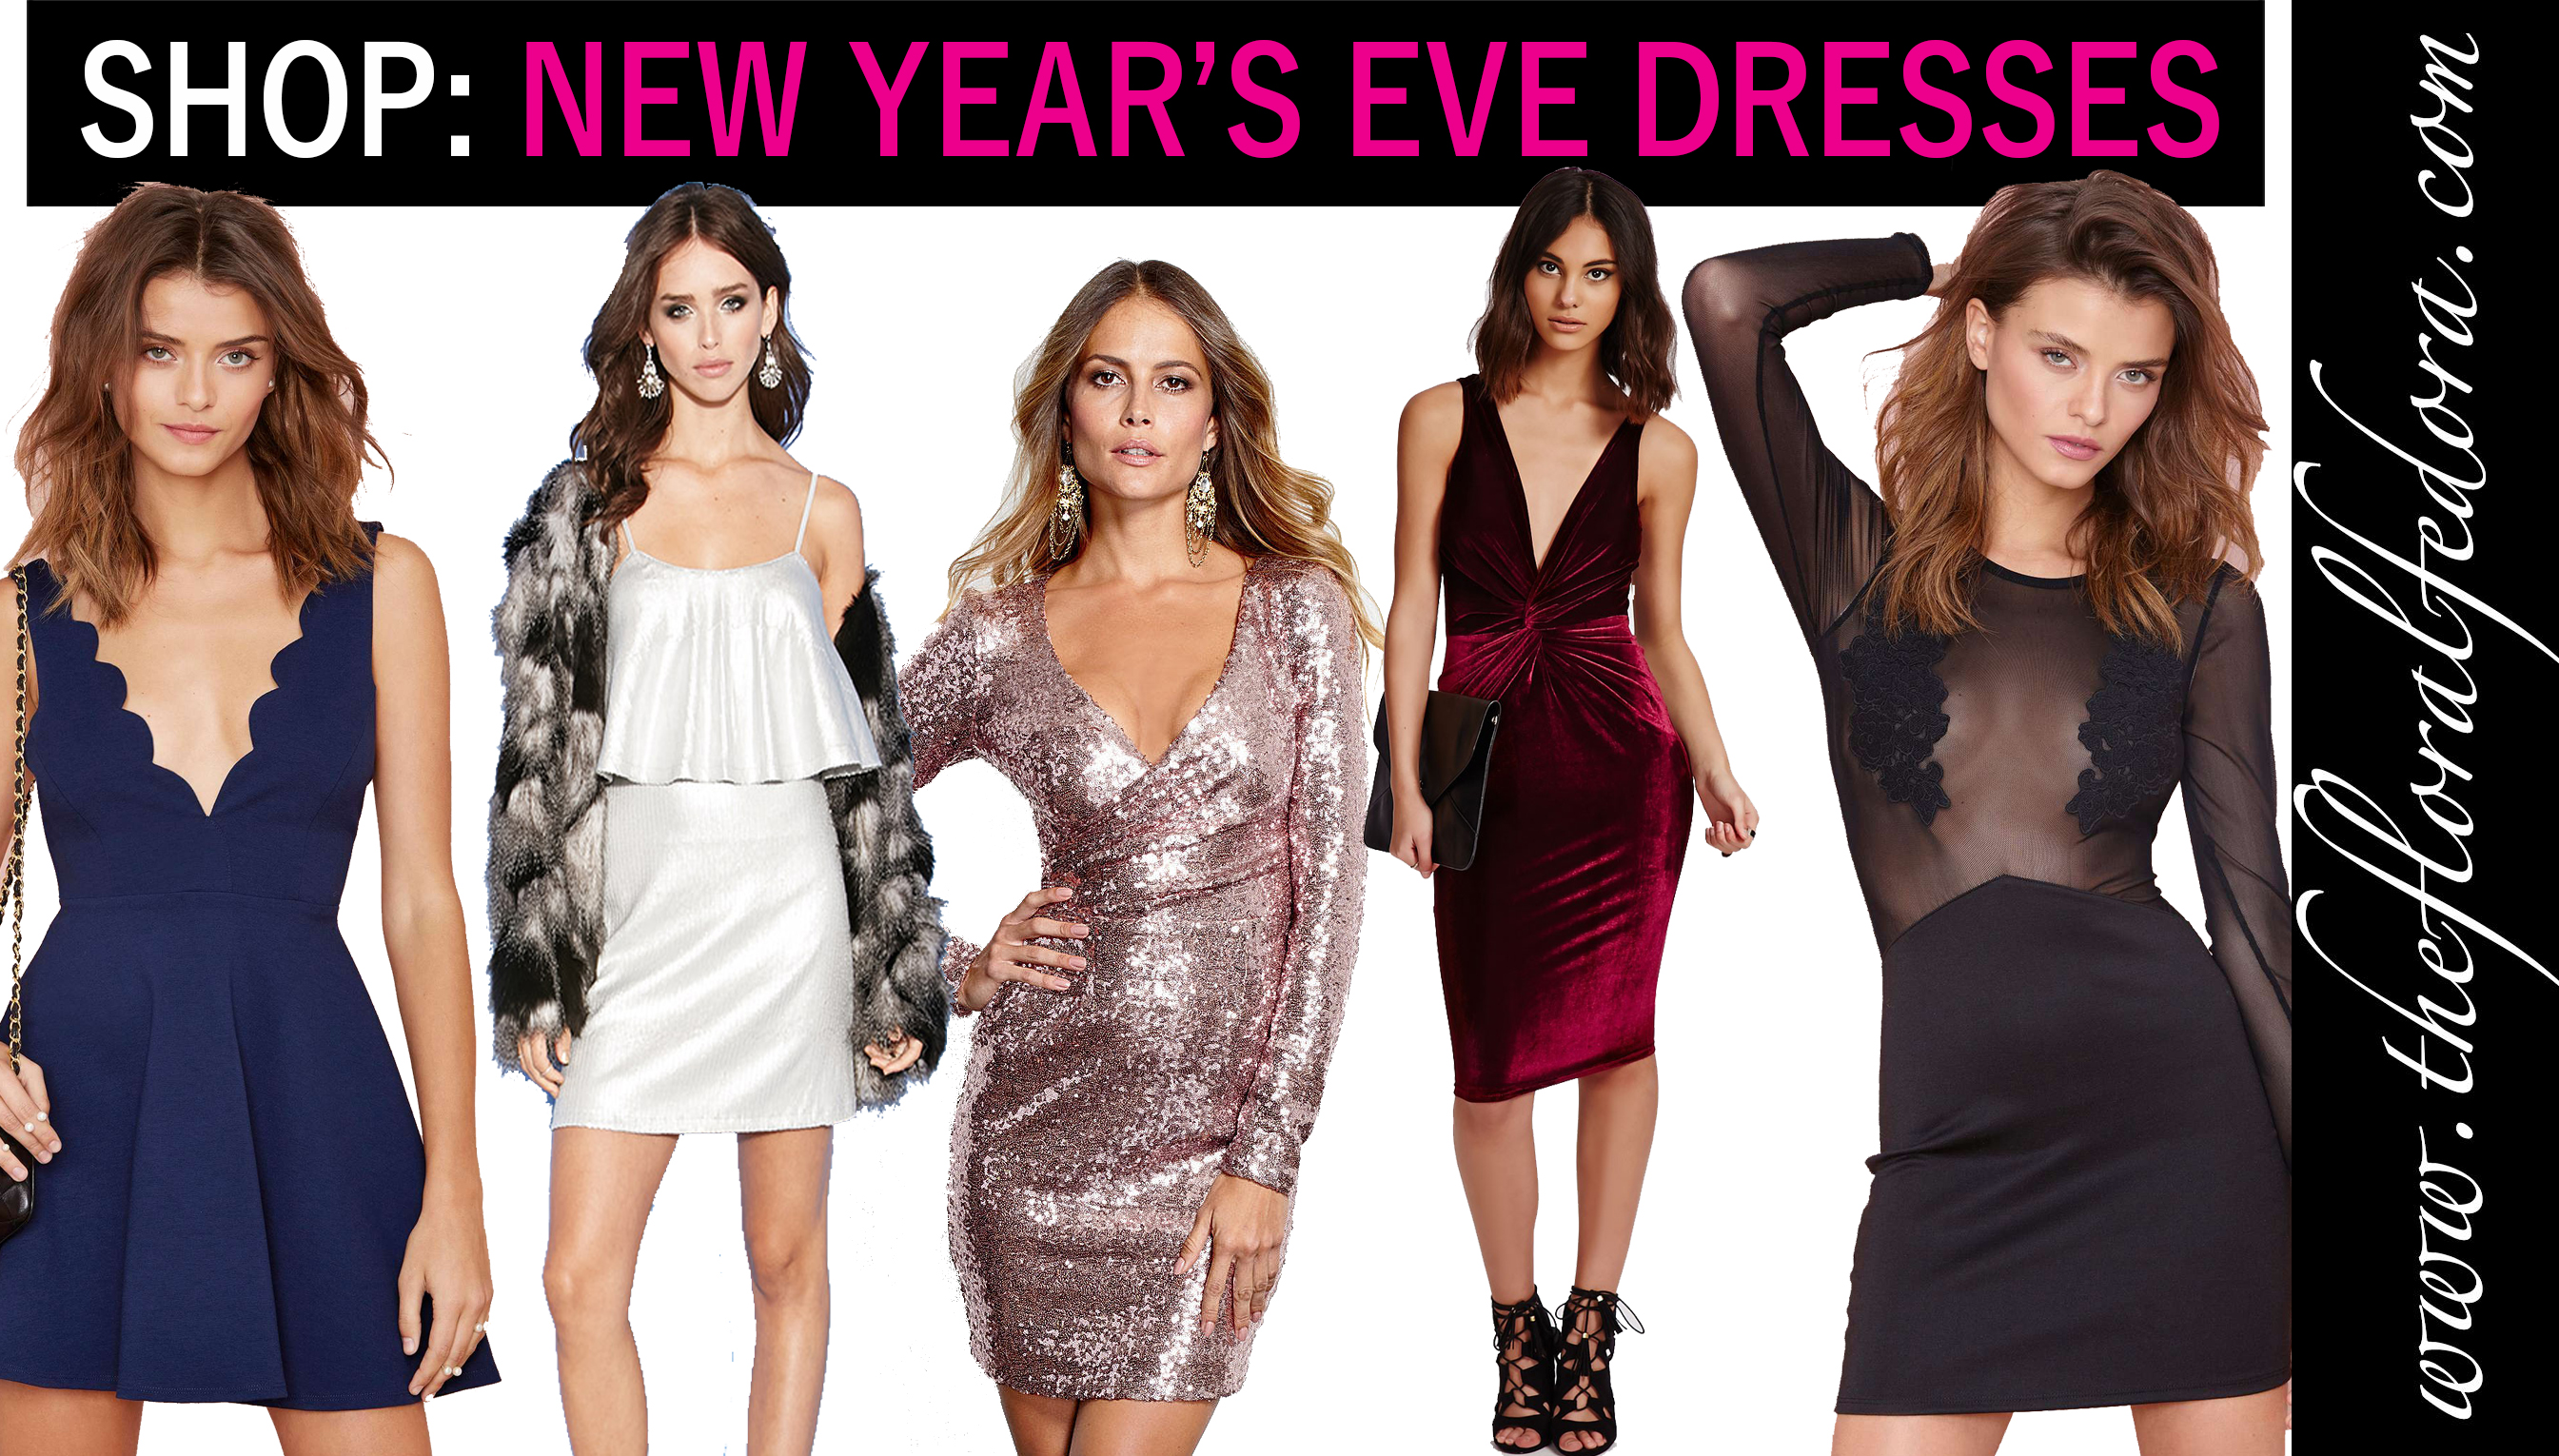 fa081583a1 Shop: New Year's Eve Dresses! | The Floral Fedora